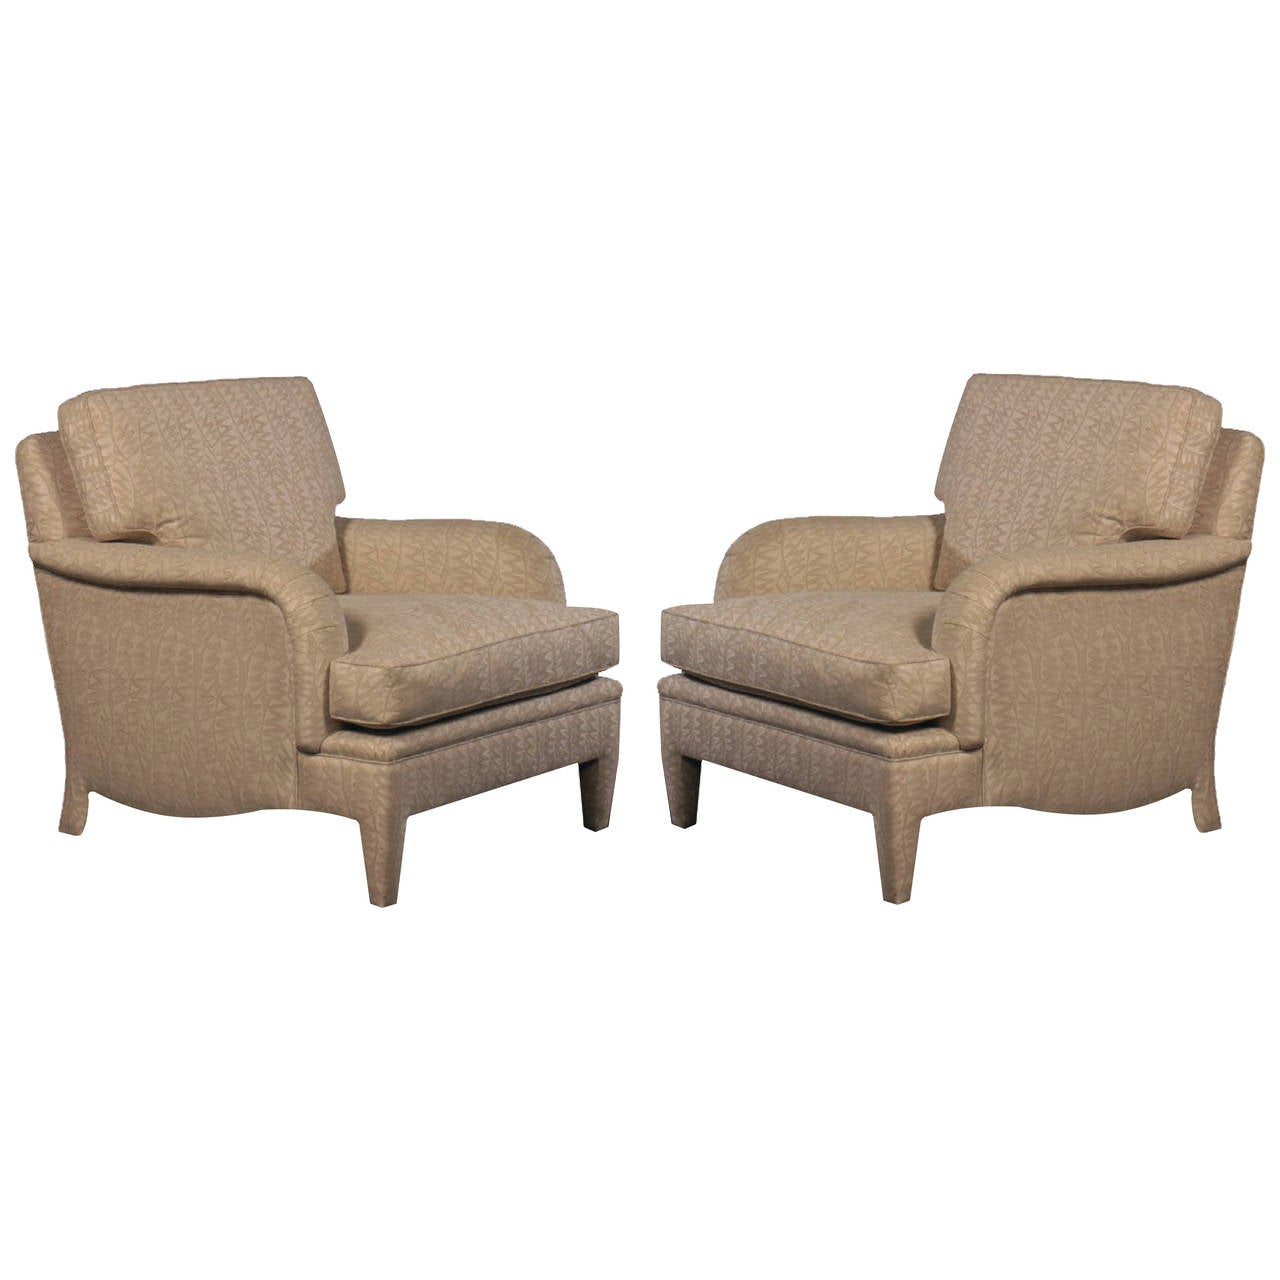 Pair of André Arbus /Samuel Marx Style Club Lounge Chairs